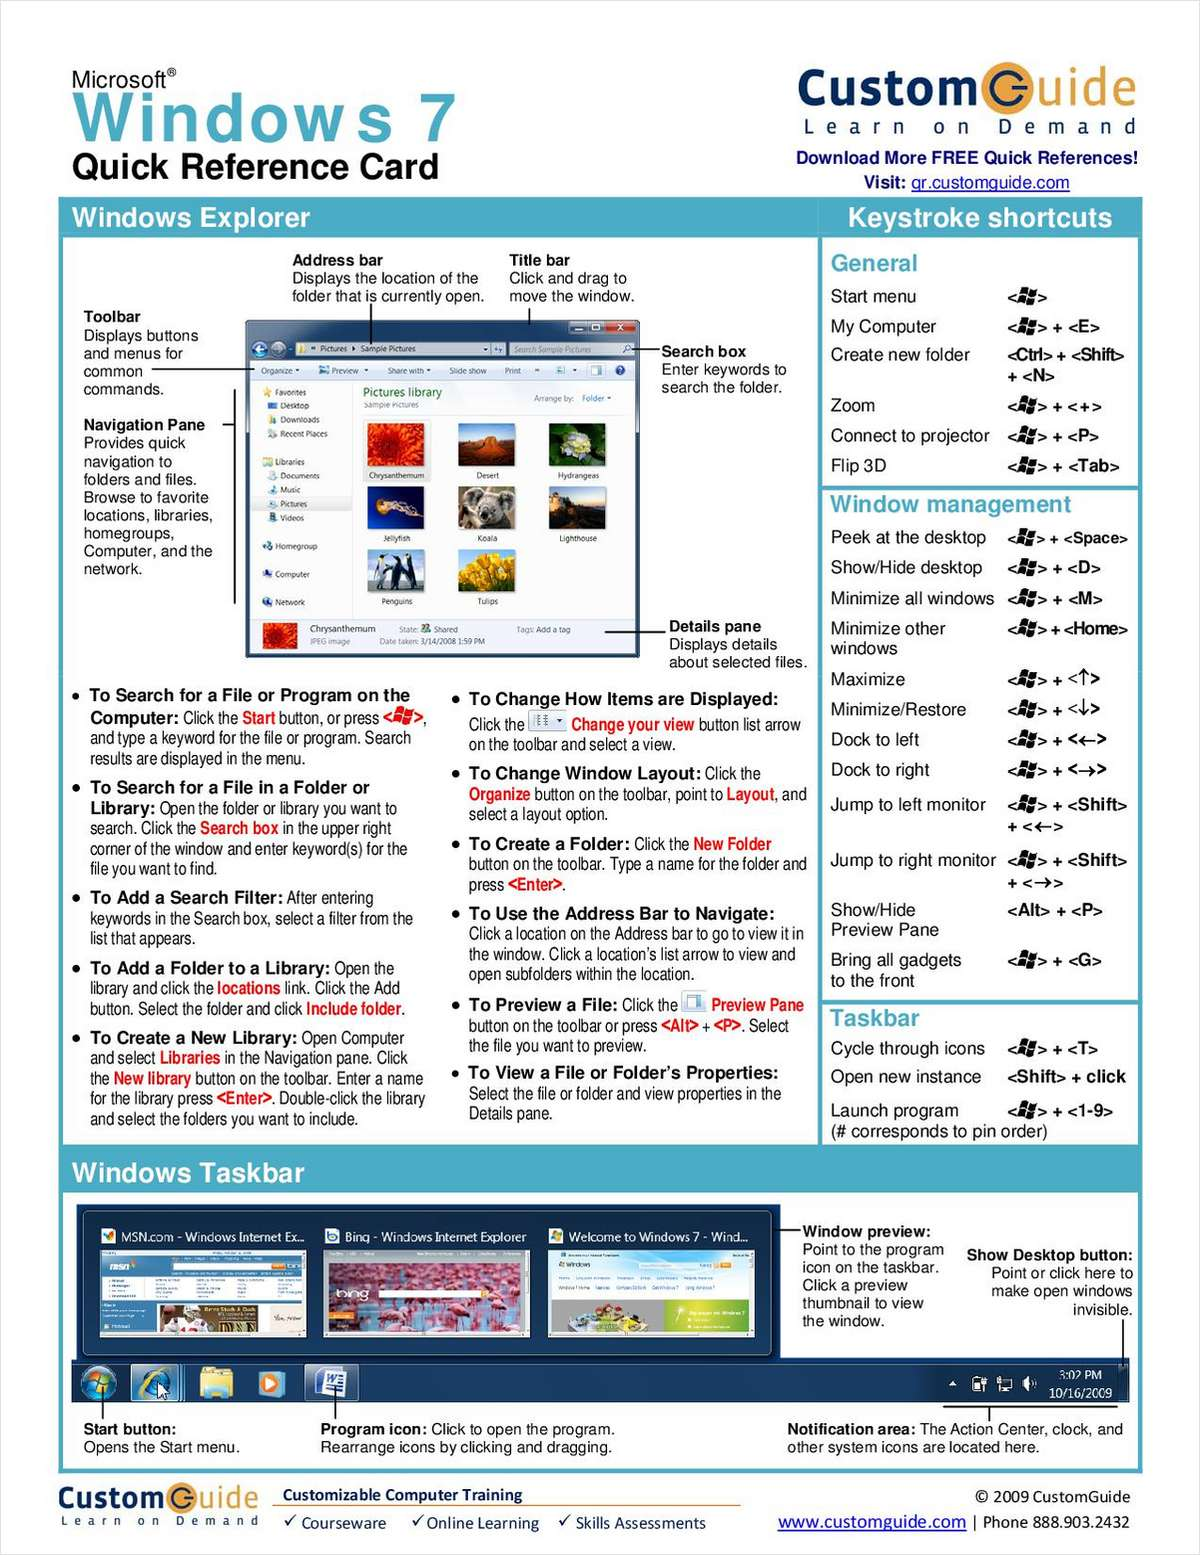 Windows 7 -- Free Quick Reference Card